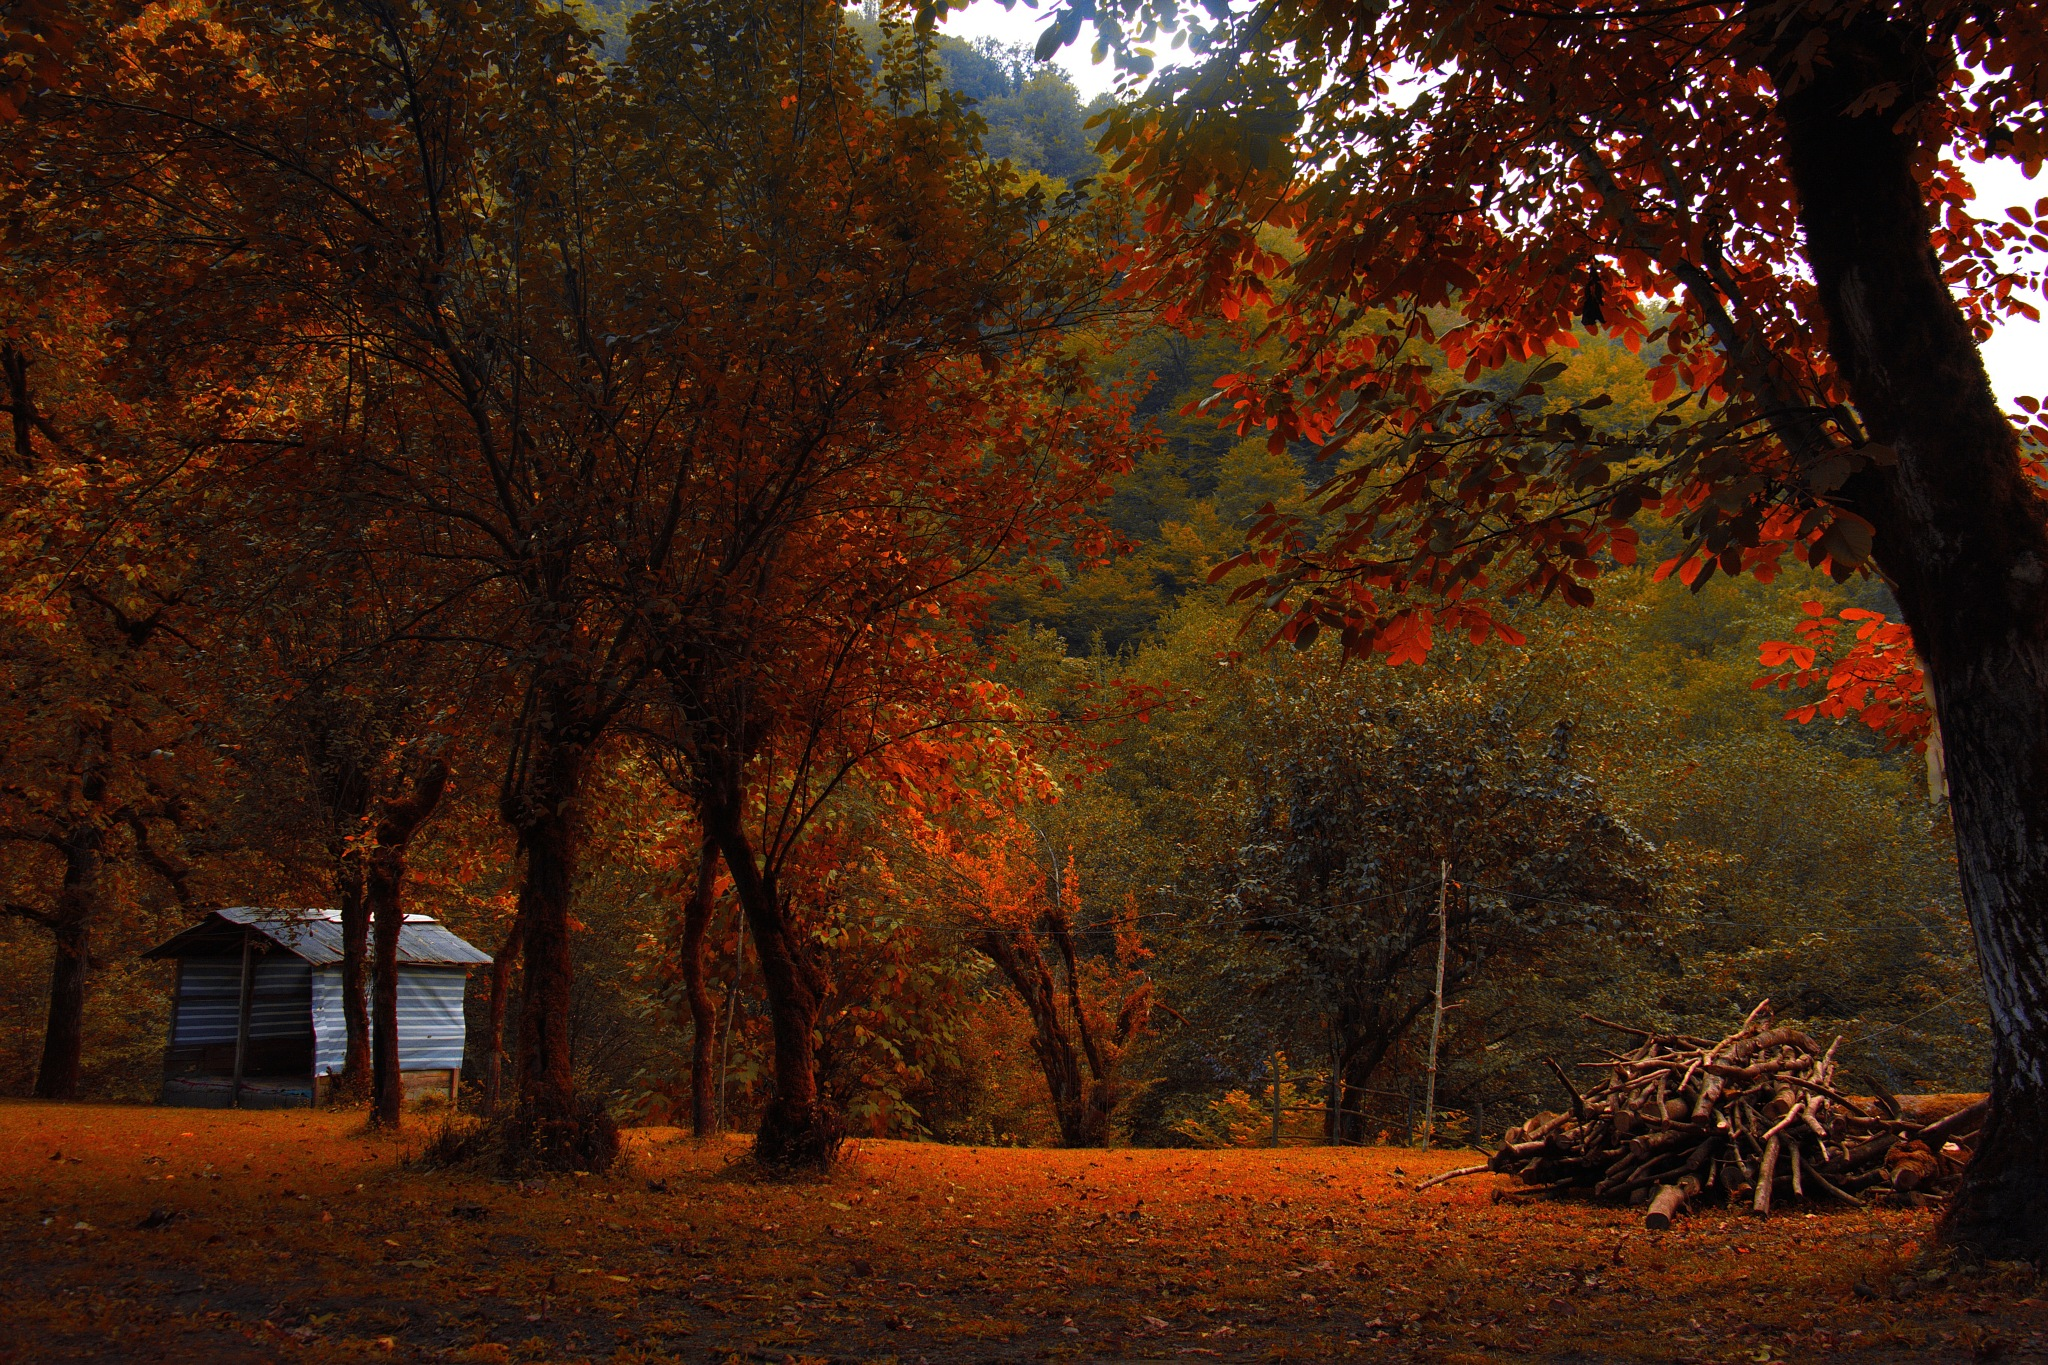 drowning in autumn by MOHSEN  TOLOUEI